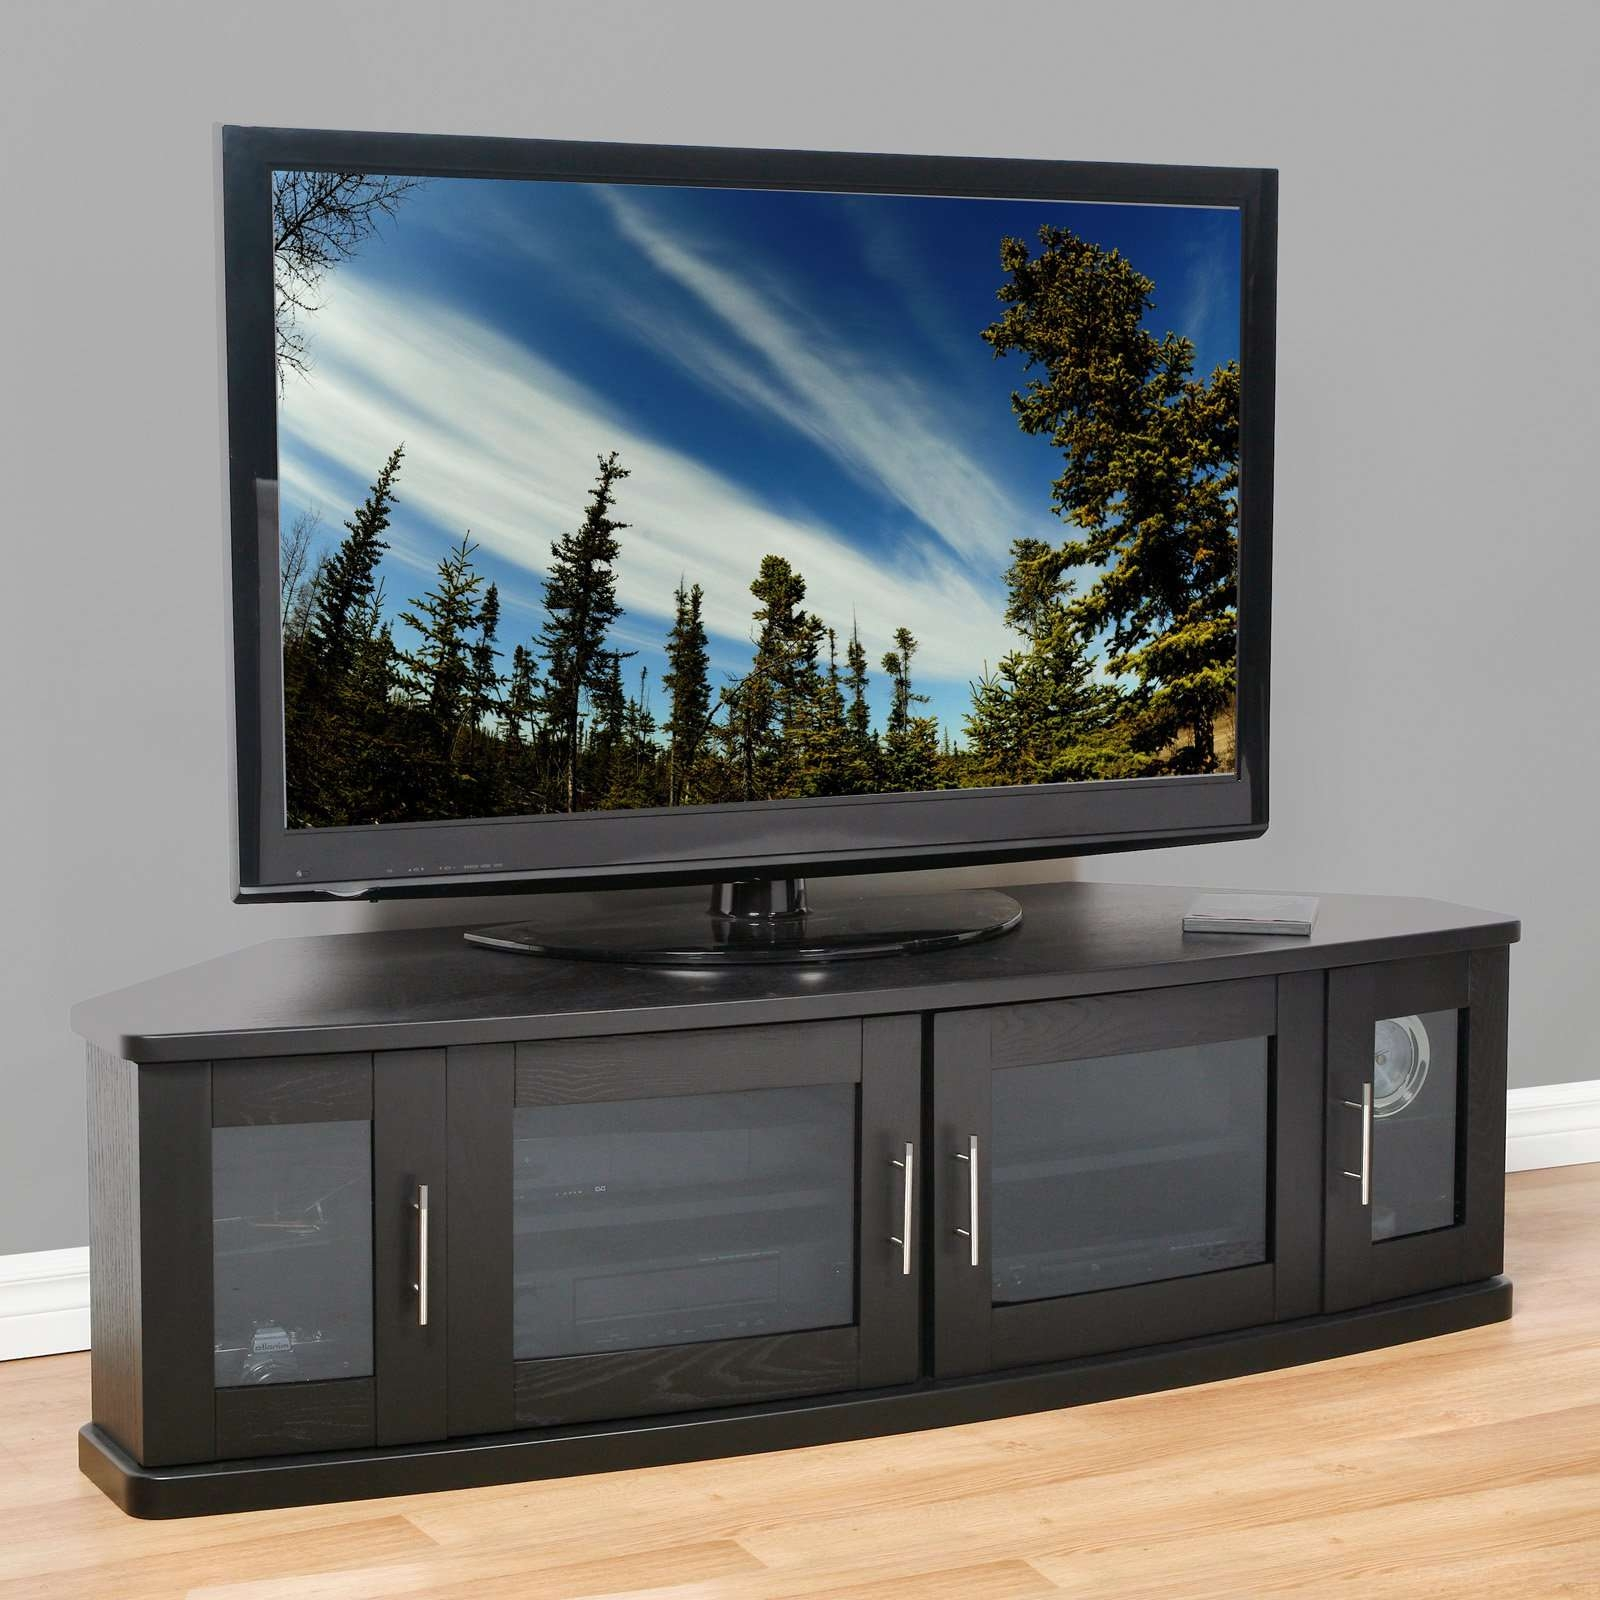 Tv Stand : 8D324A5Cf92E 1 Amazing Tv Stand In Pictures Design Intended For Low Corner Tv Stands (View 19 of 20)